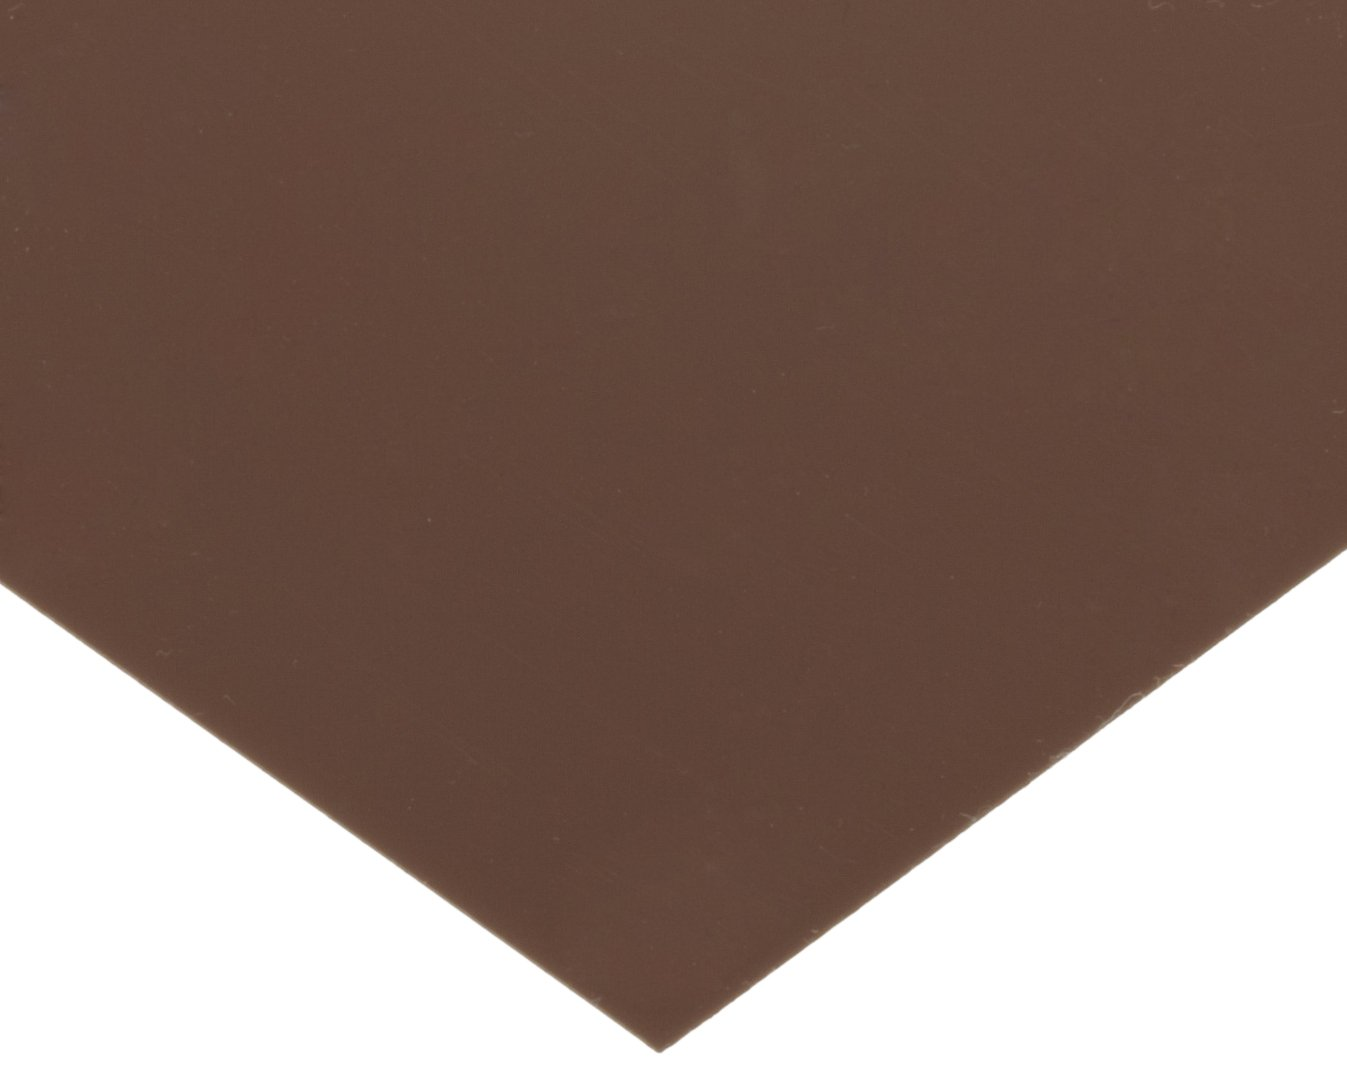 PVC (Polyvinyl Chloride) Shim Stock, Flat Sheet, Brown, 0.010'' Thickness, 10'' Width, 20'' Length (Pack of 10) by Small Parts